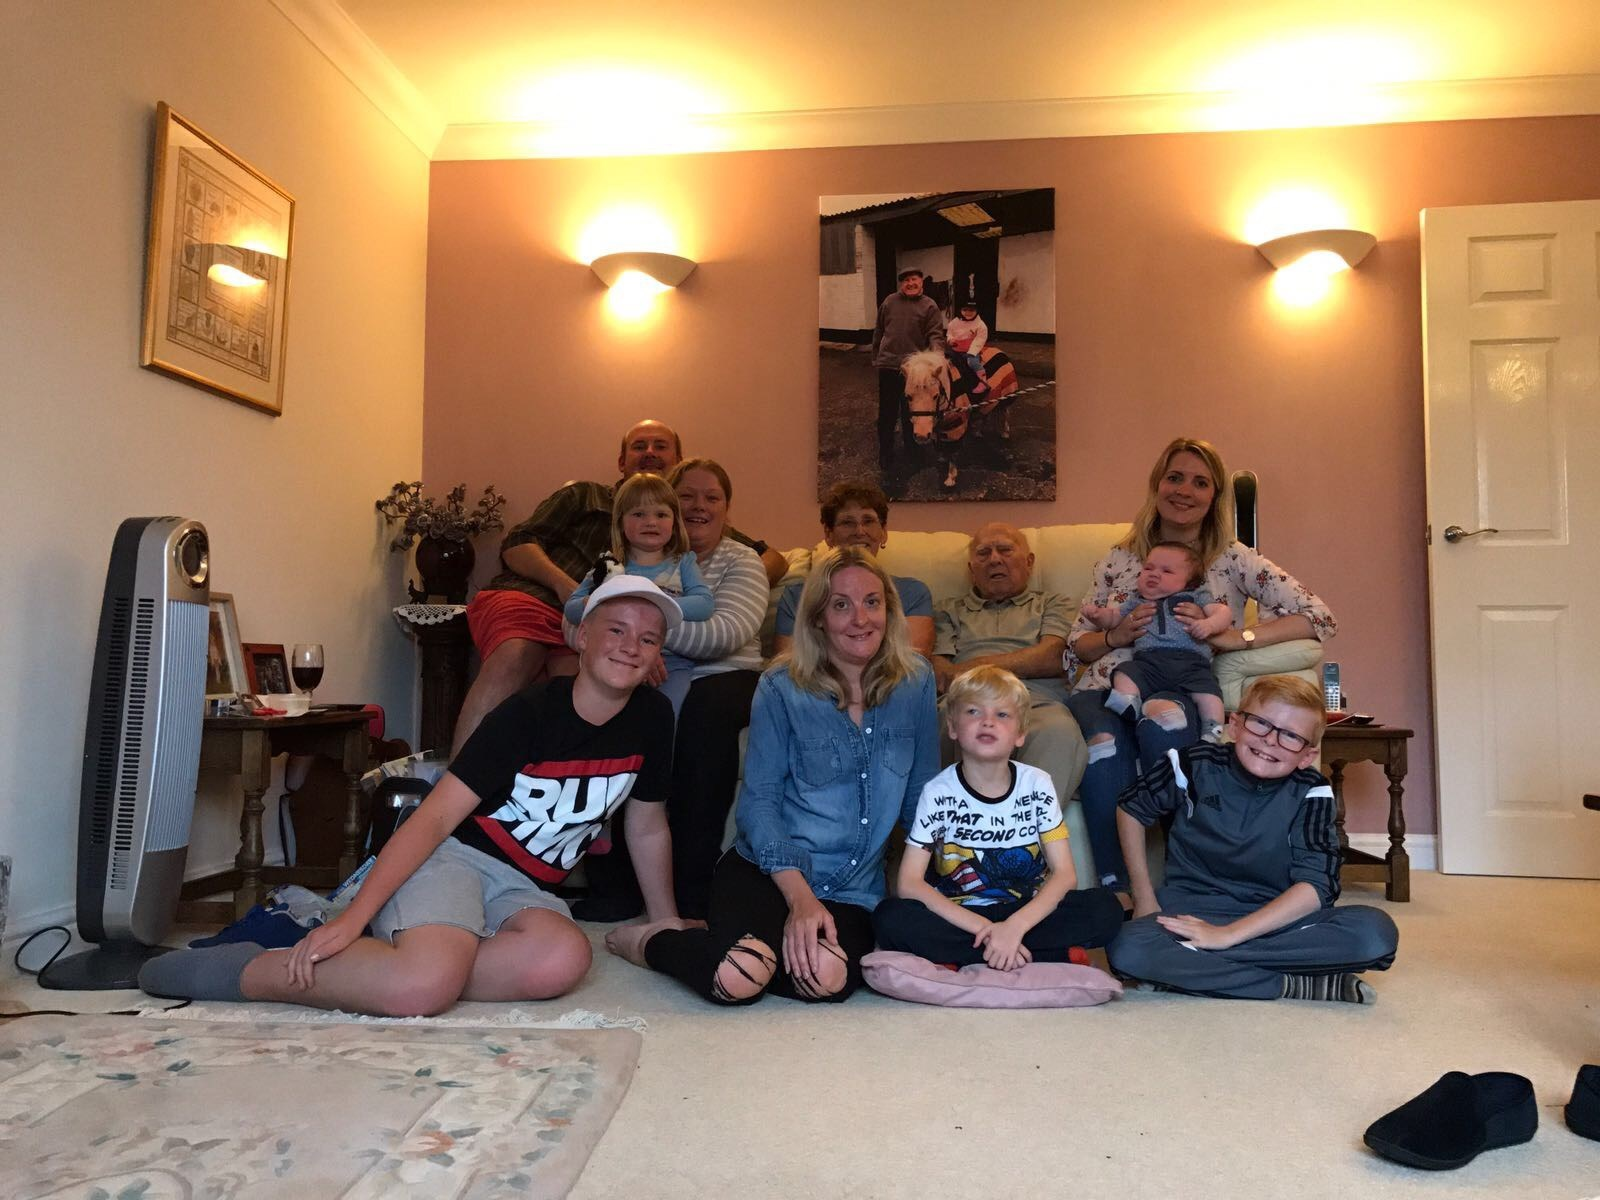 The family that Jon loved and cared for xx